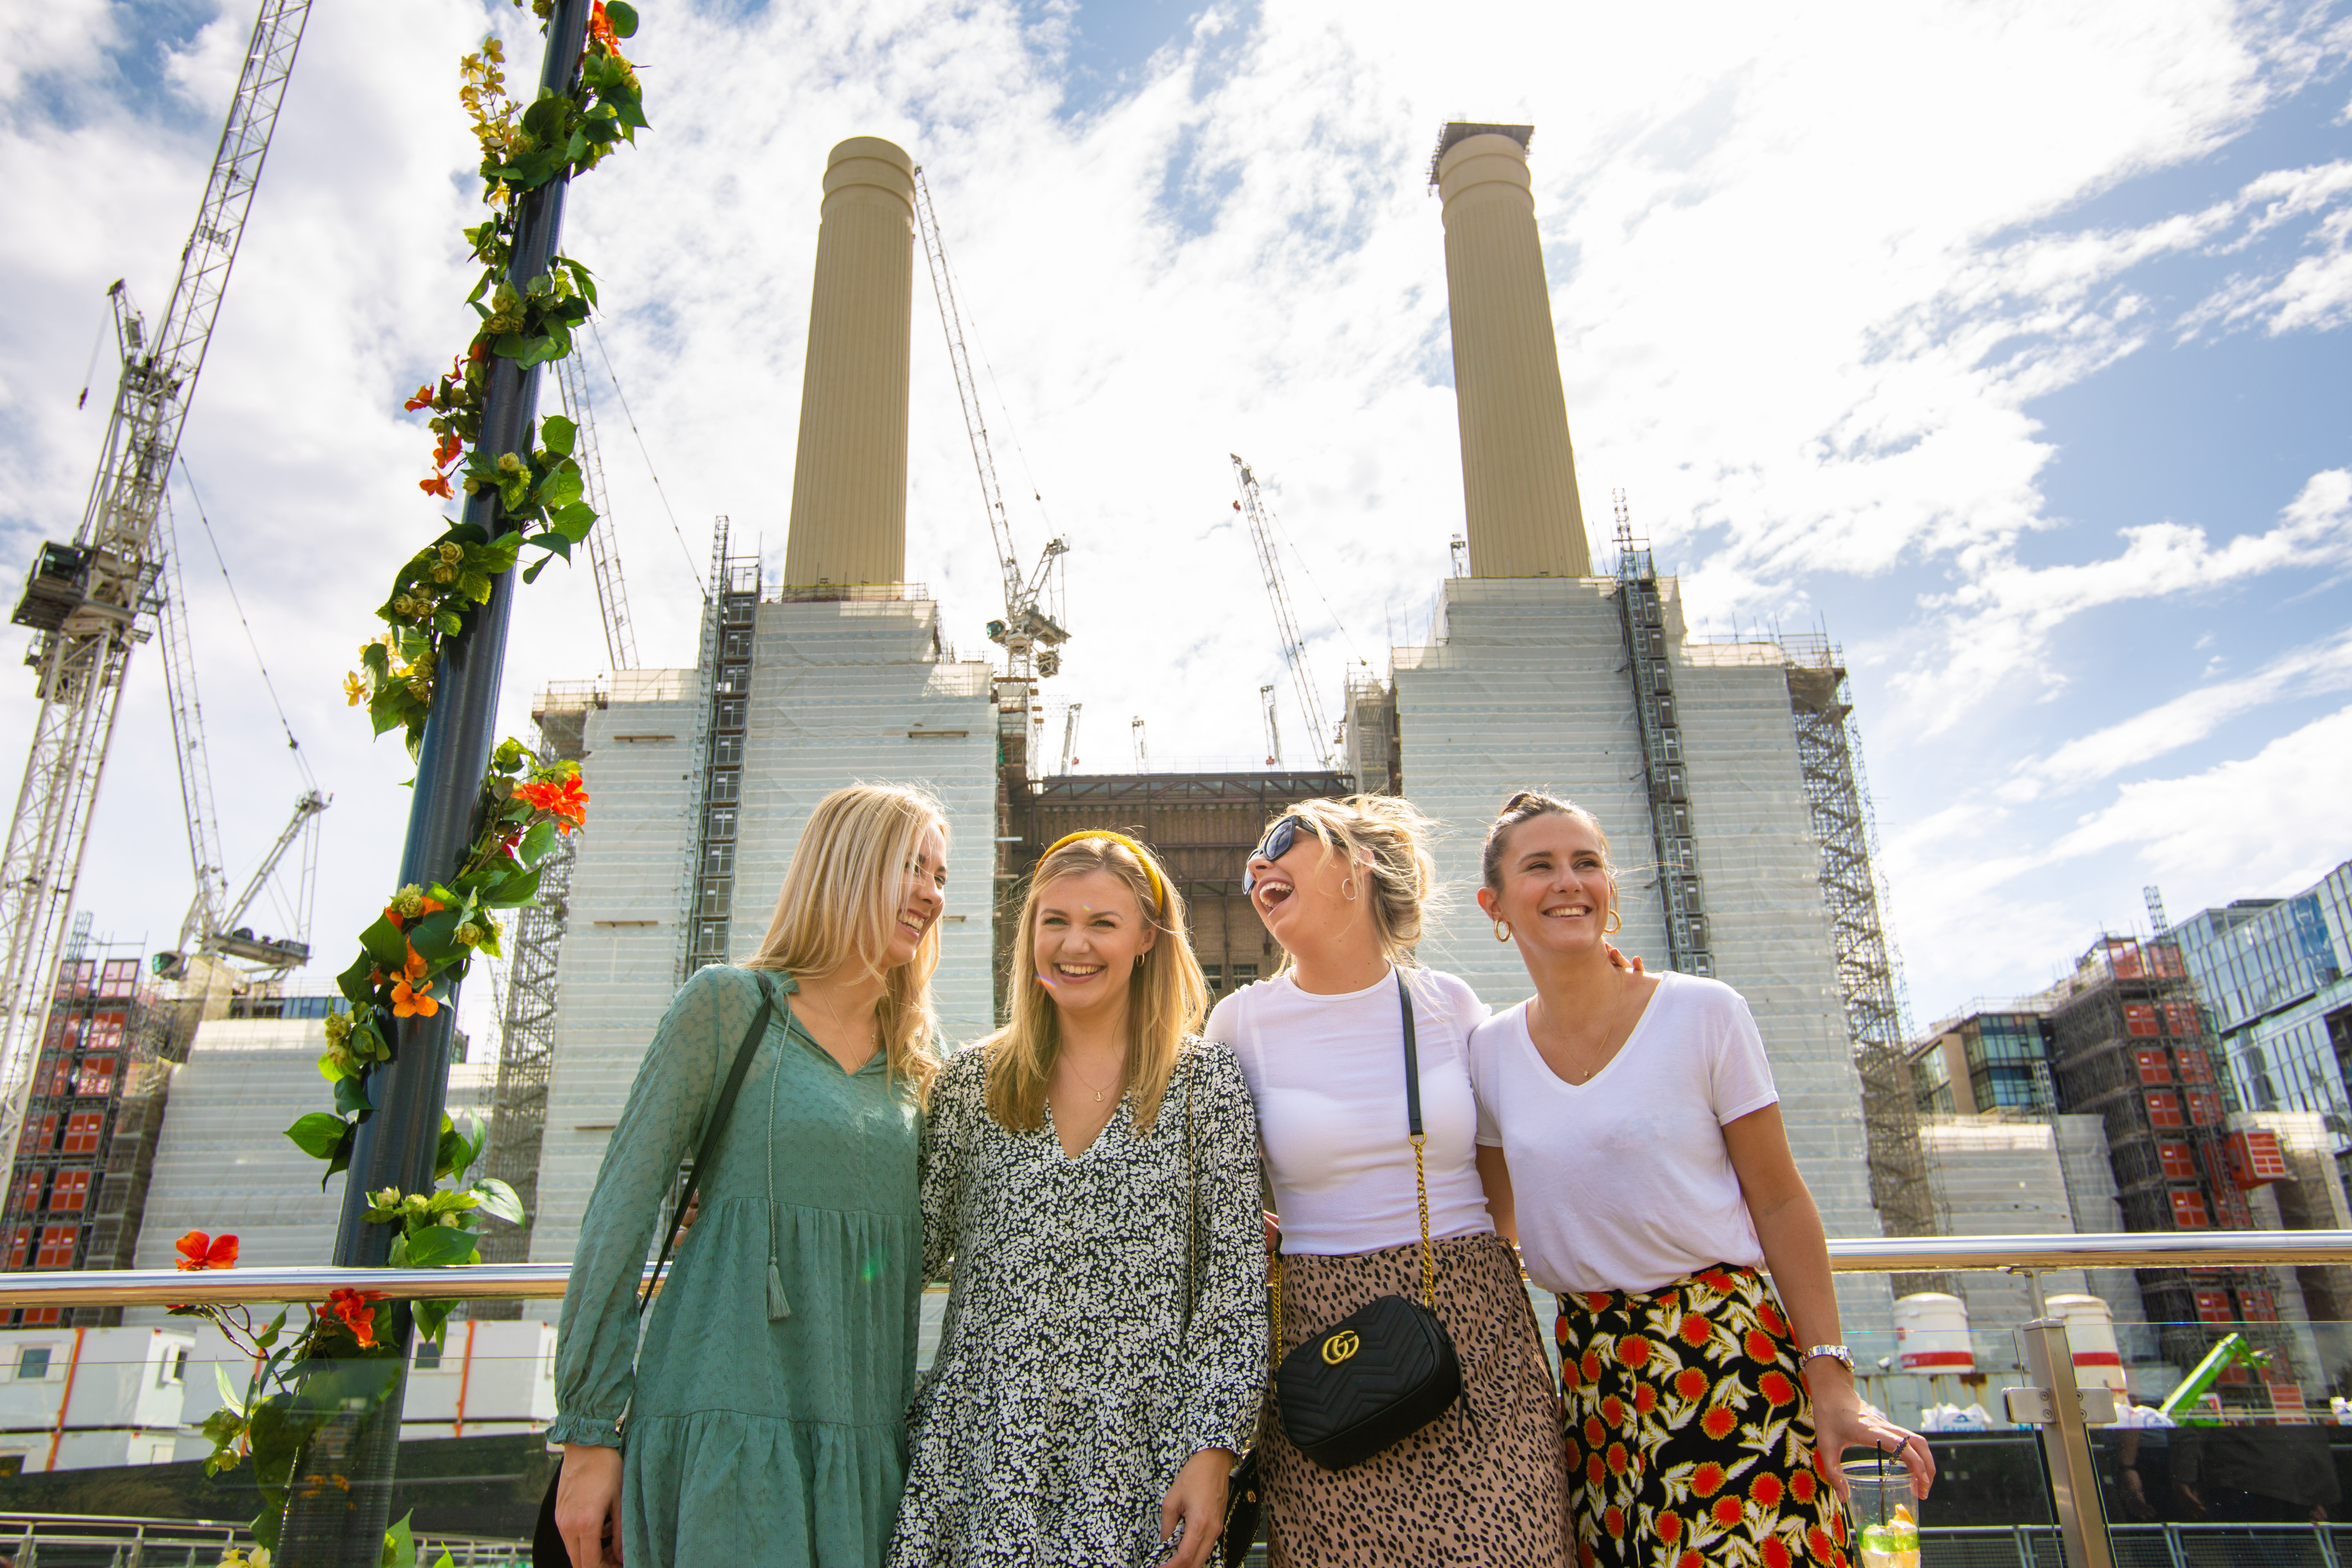 Bank Holiday Monday at Battersea Power Station